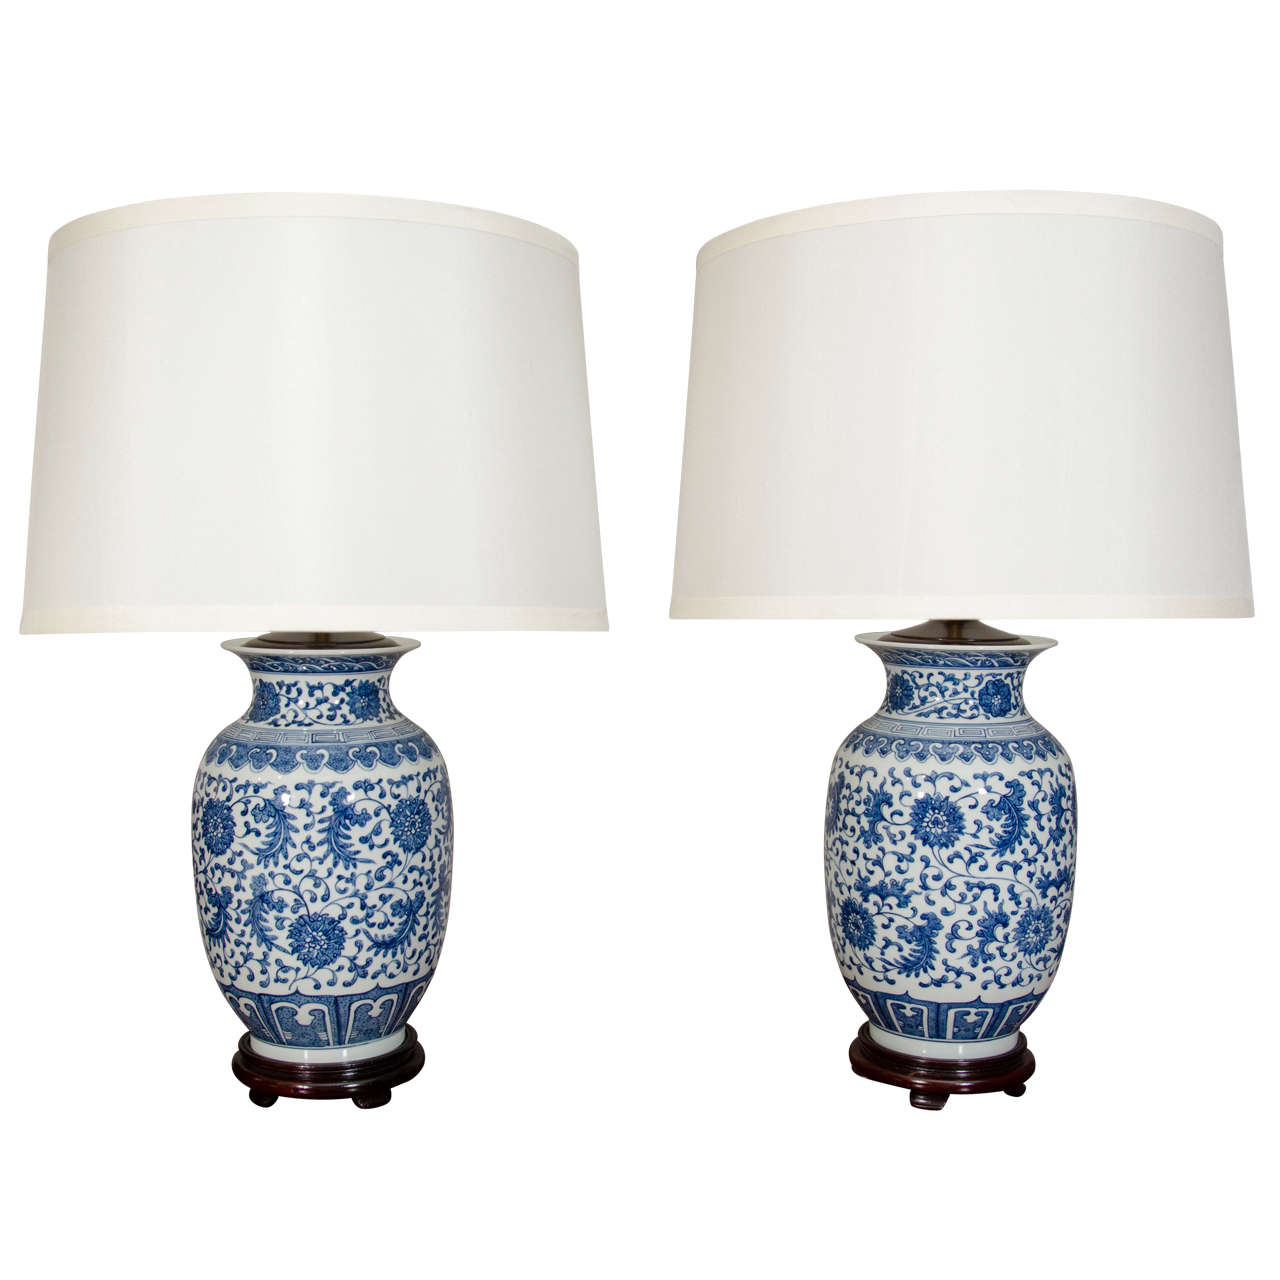 Pair Of Blue And White Porcelain Chinese Ginger Jar Lamps